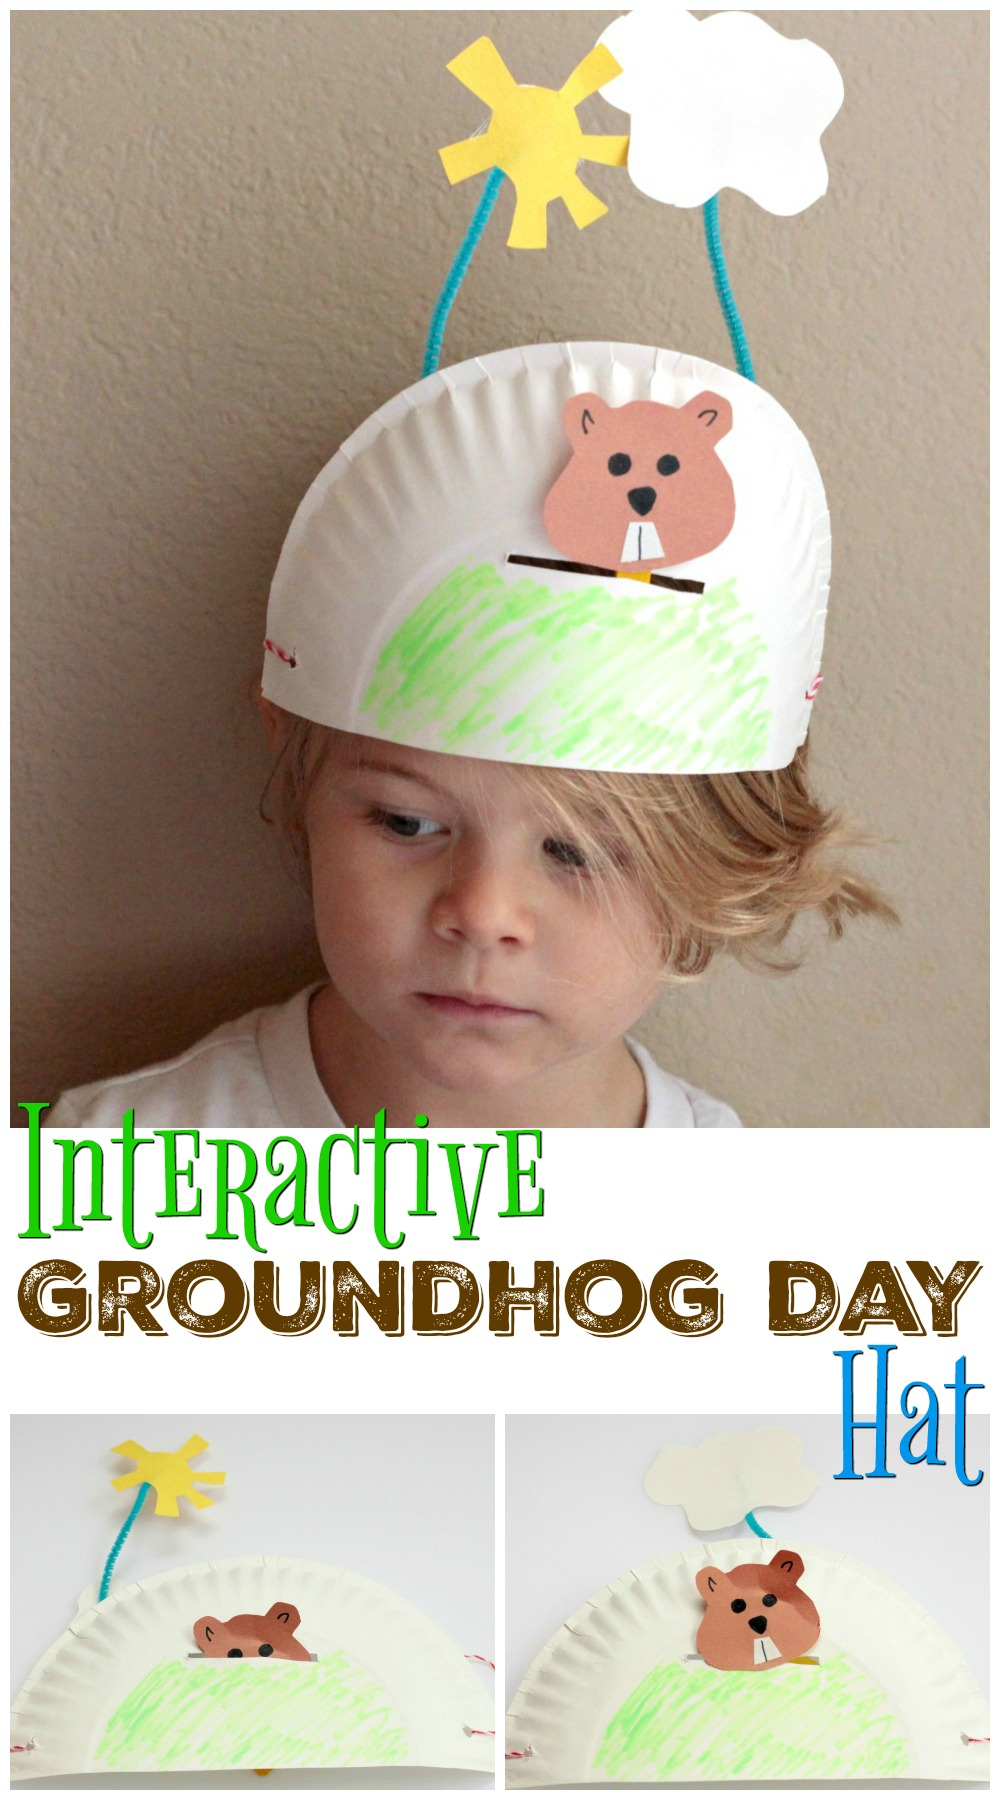 Fun and Interactive Groundhog Craft for preschool, Kindergarten or First Grade. Will the Groundhog see his shadow?